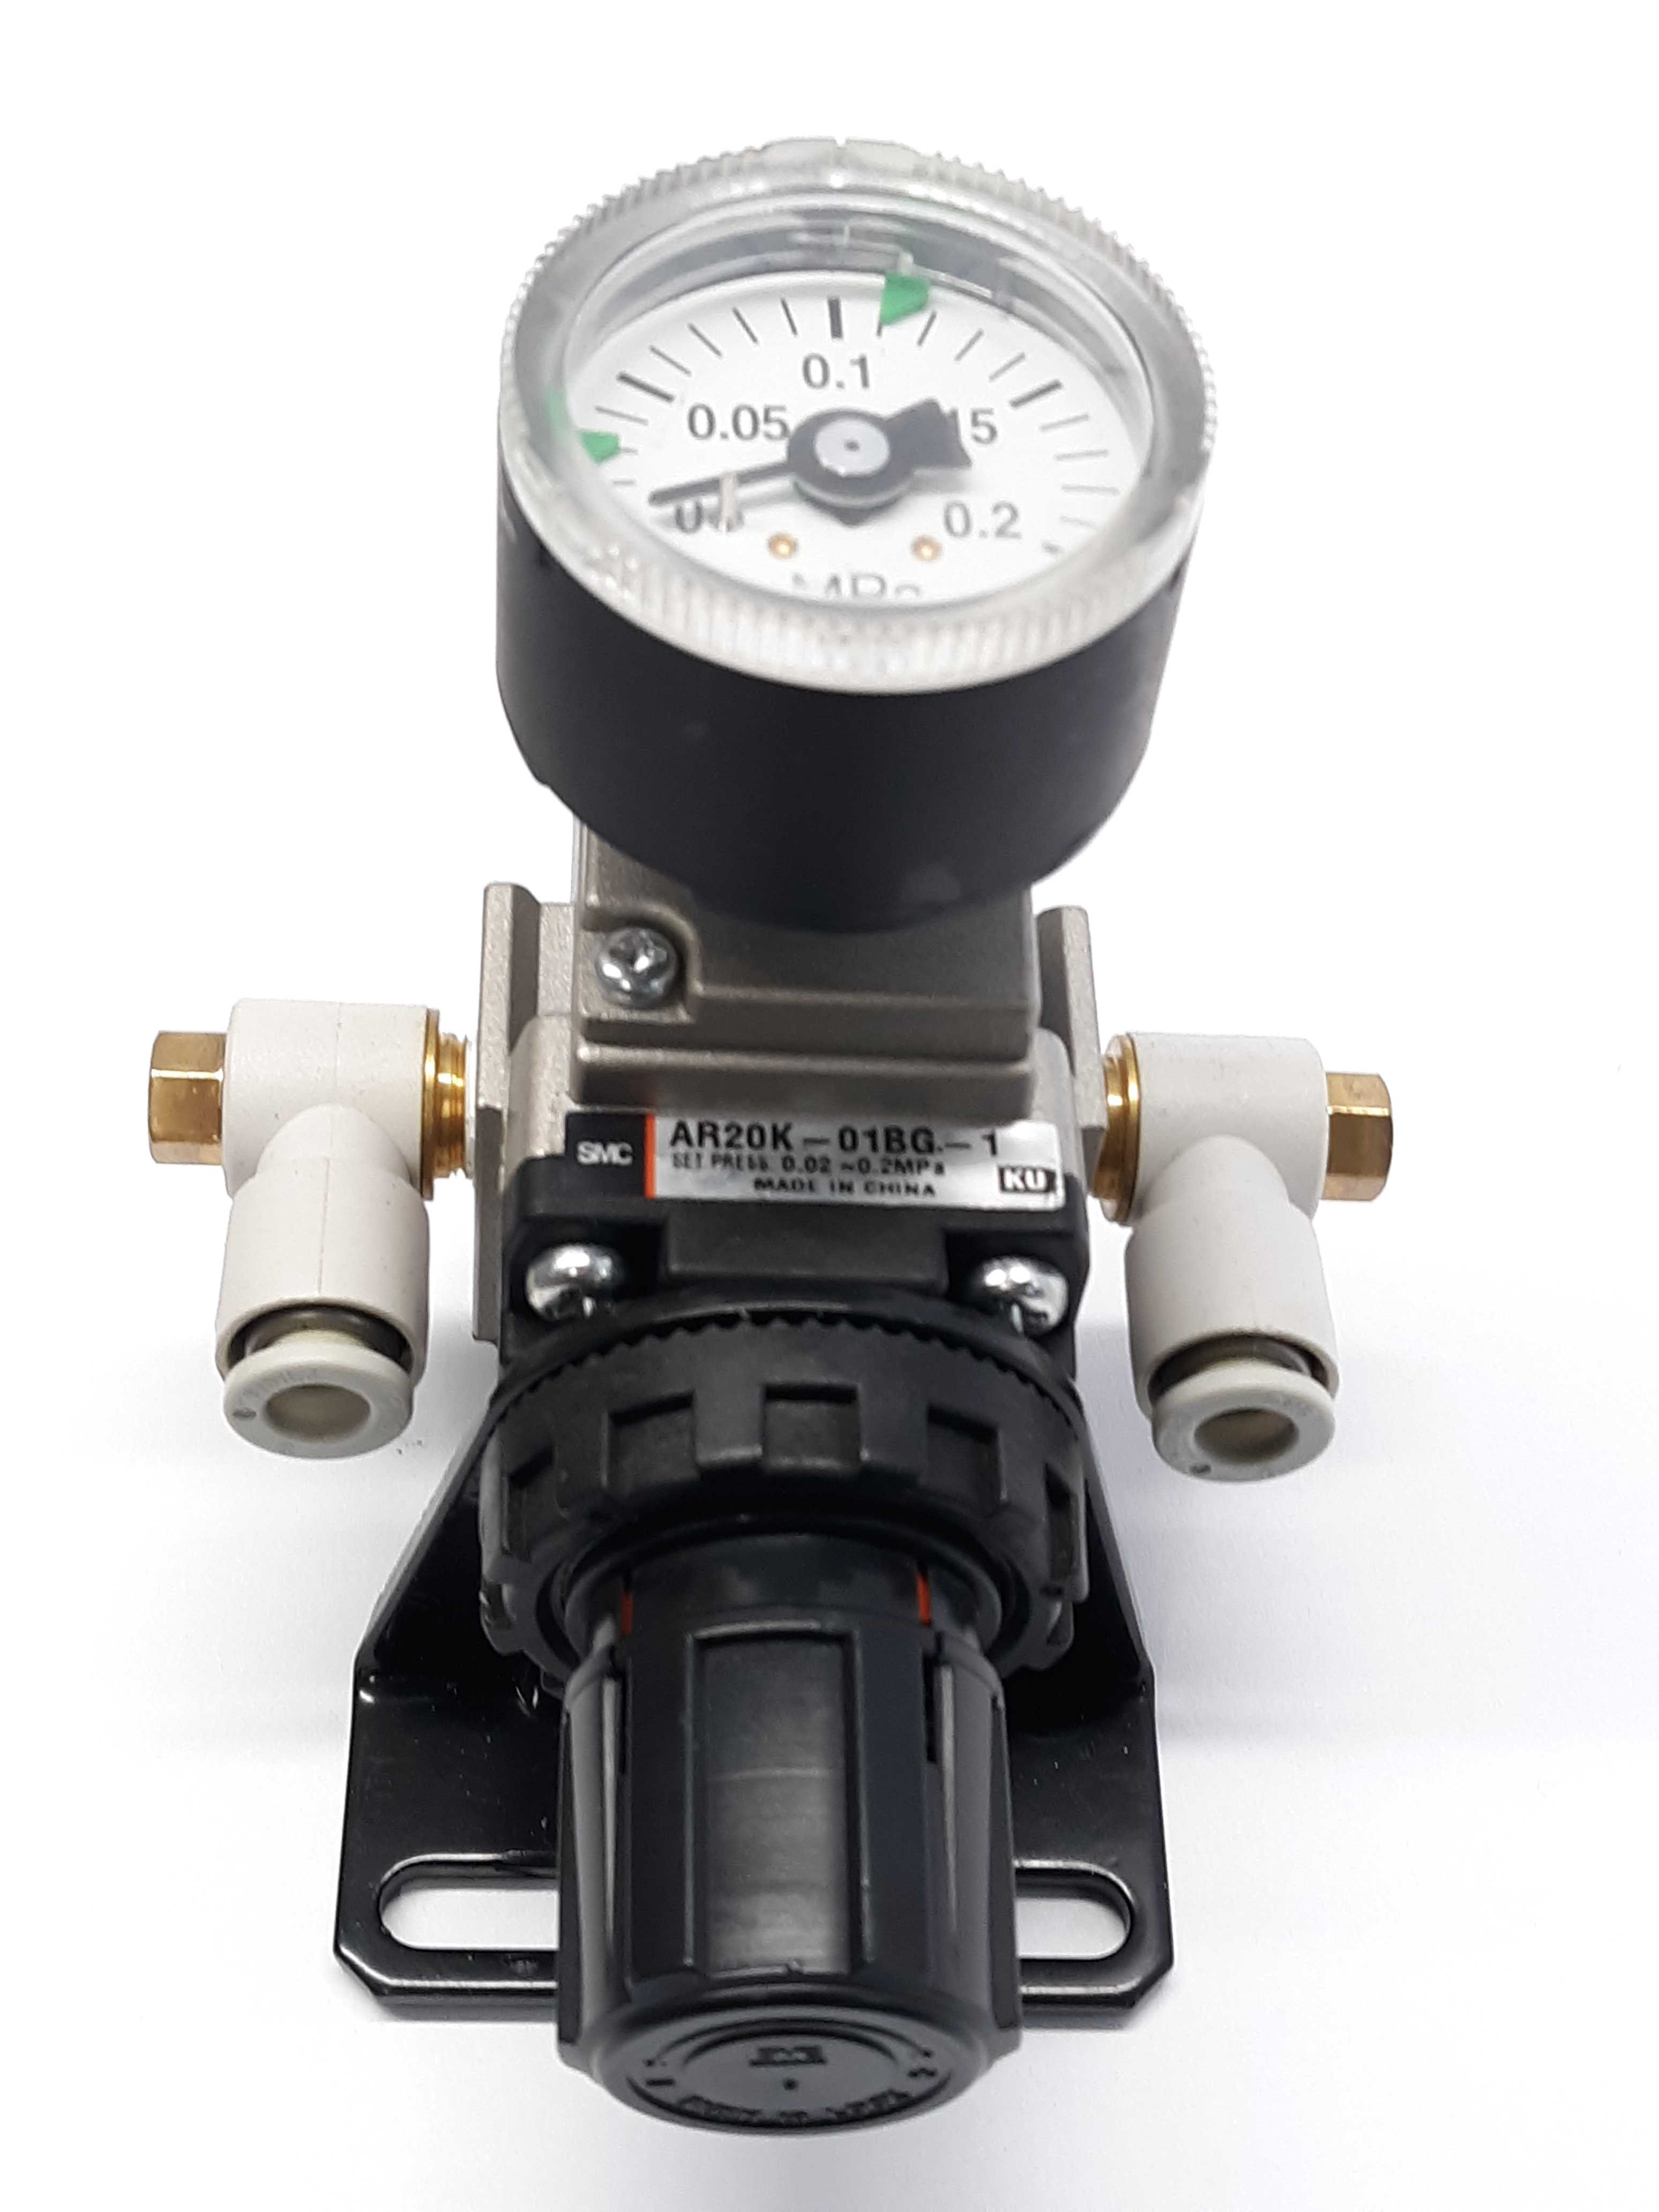 SMC AR20K-01BG-1 Regulator Valve